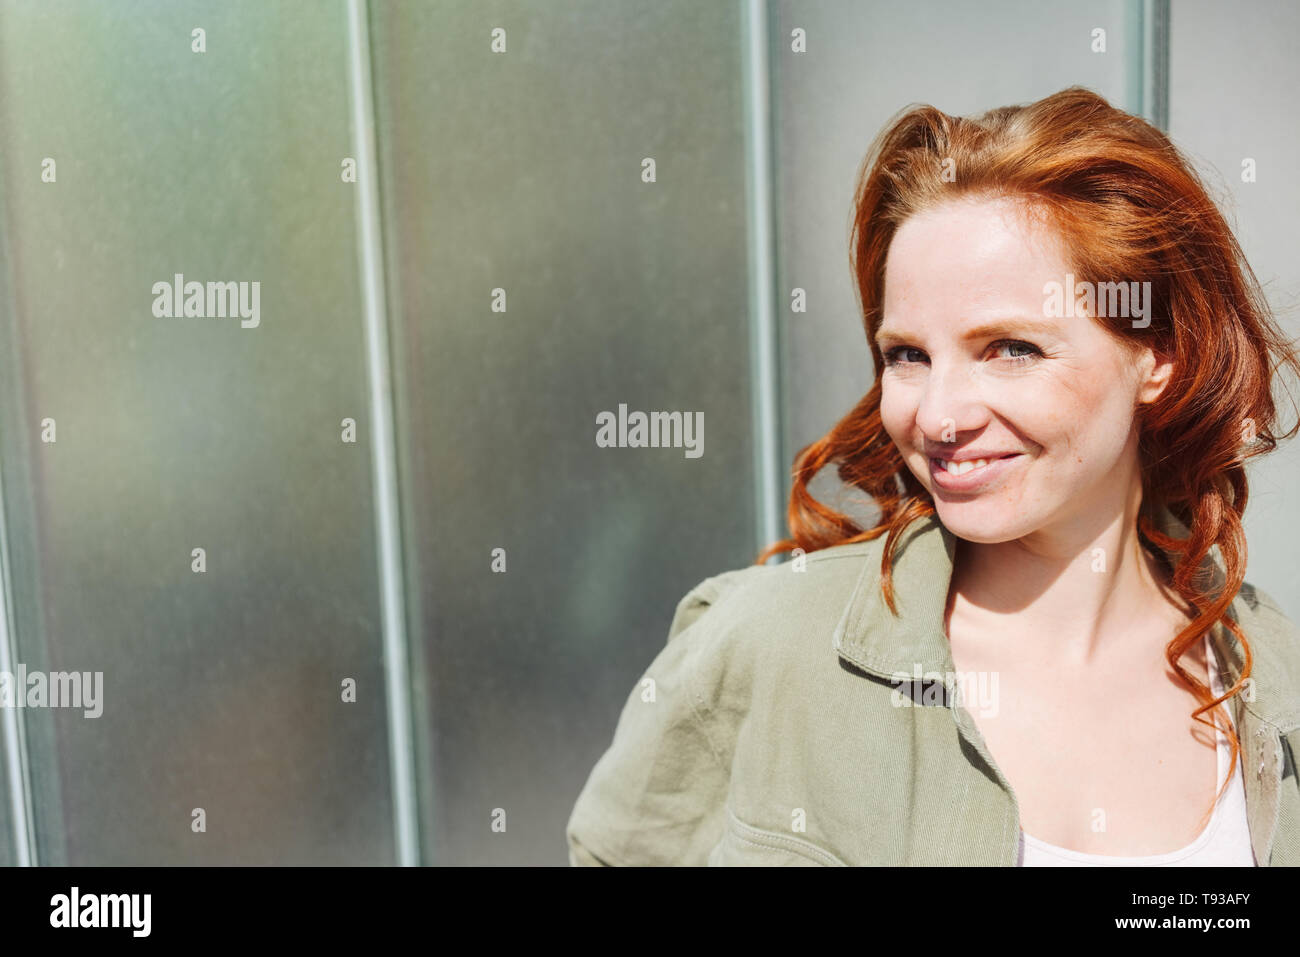 Cheeky happy young redhead woman with tousled long hair grinning at camera in front of an urban building with copy space - Stock Image